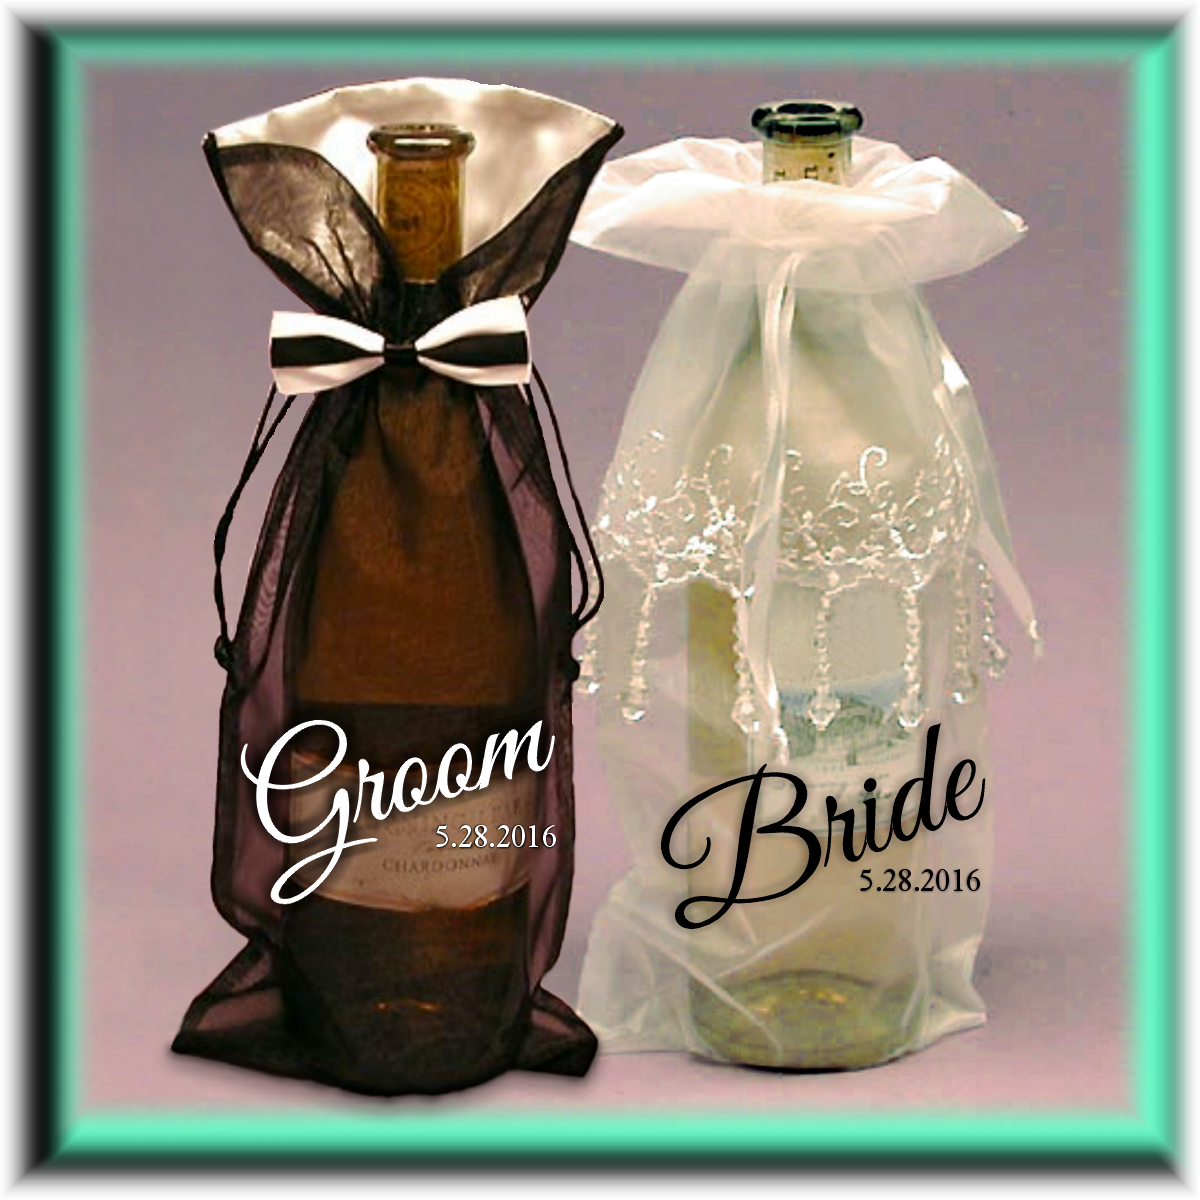 Gift Ideas For Bride And Groom From Maid Of Honor : Ideas Wedding Gift From Maid Of Honor To Bride personalized wedding ...